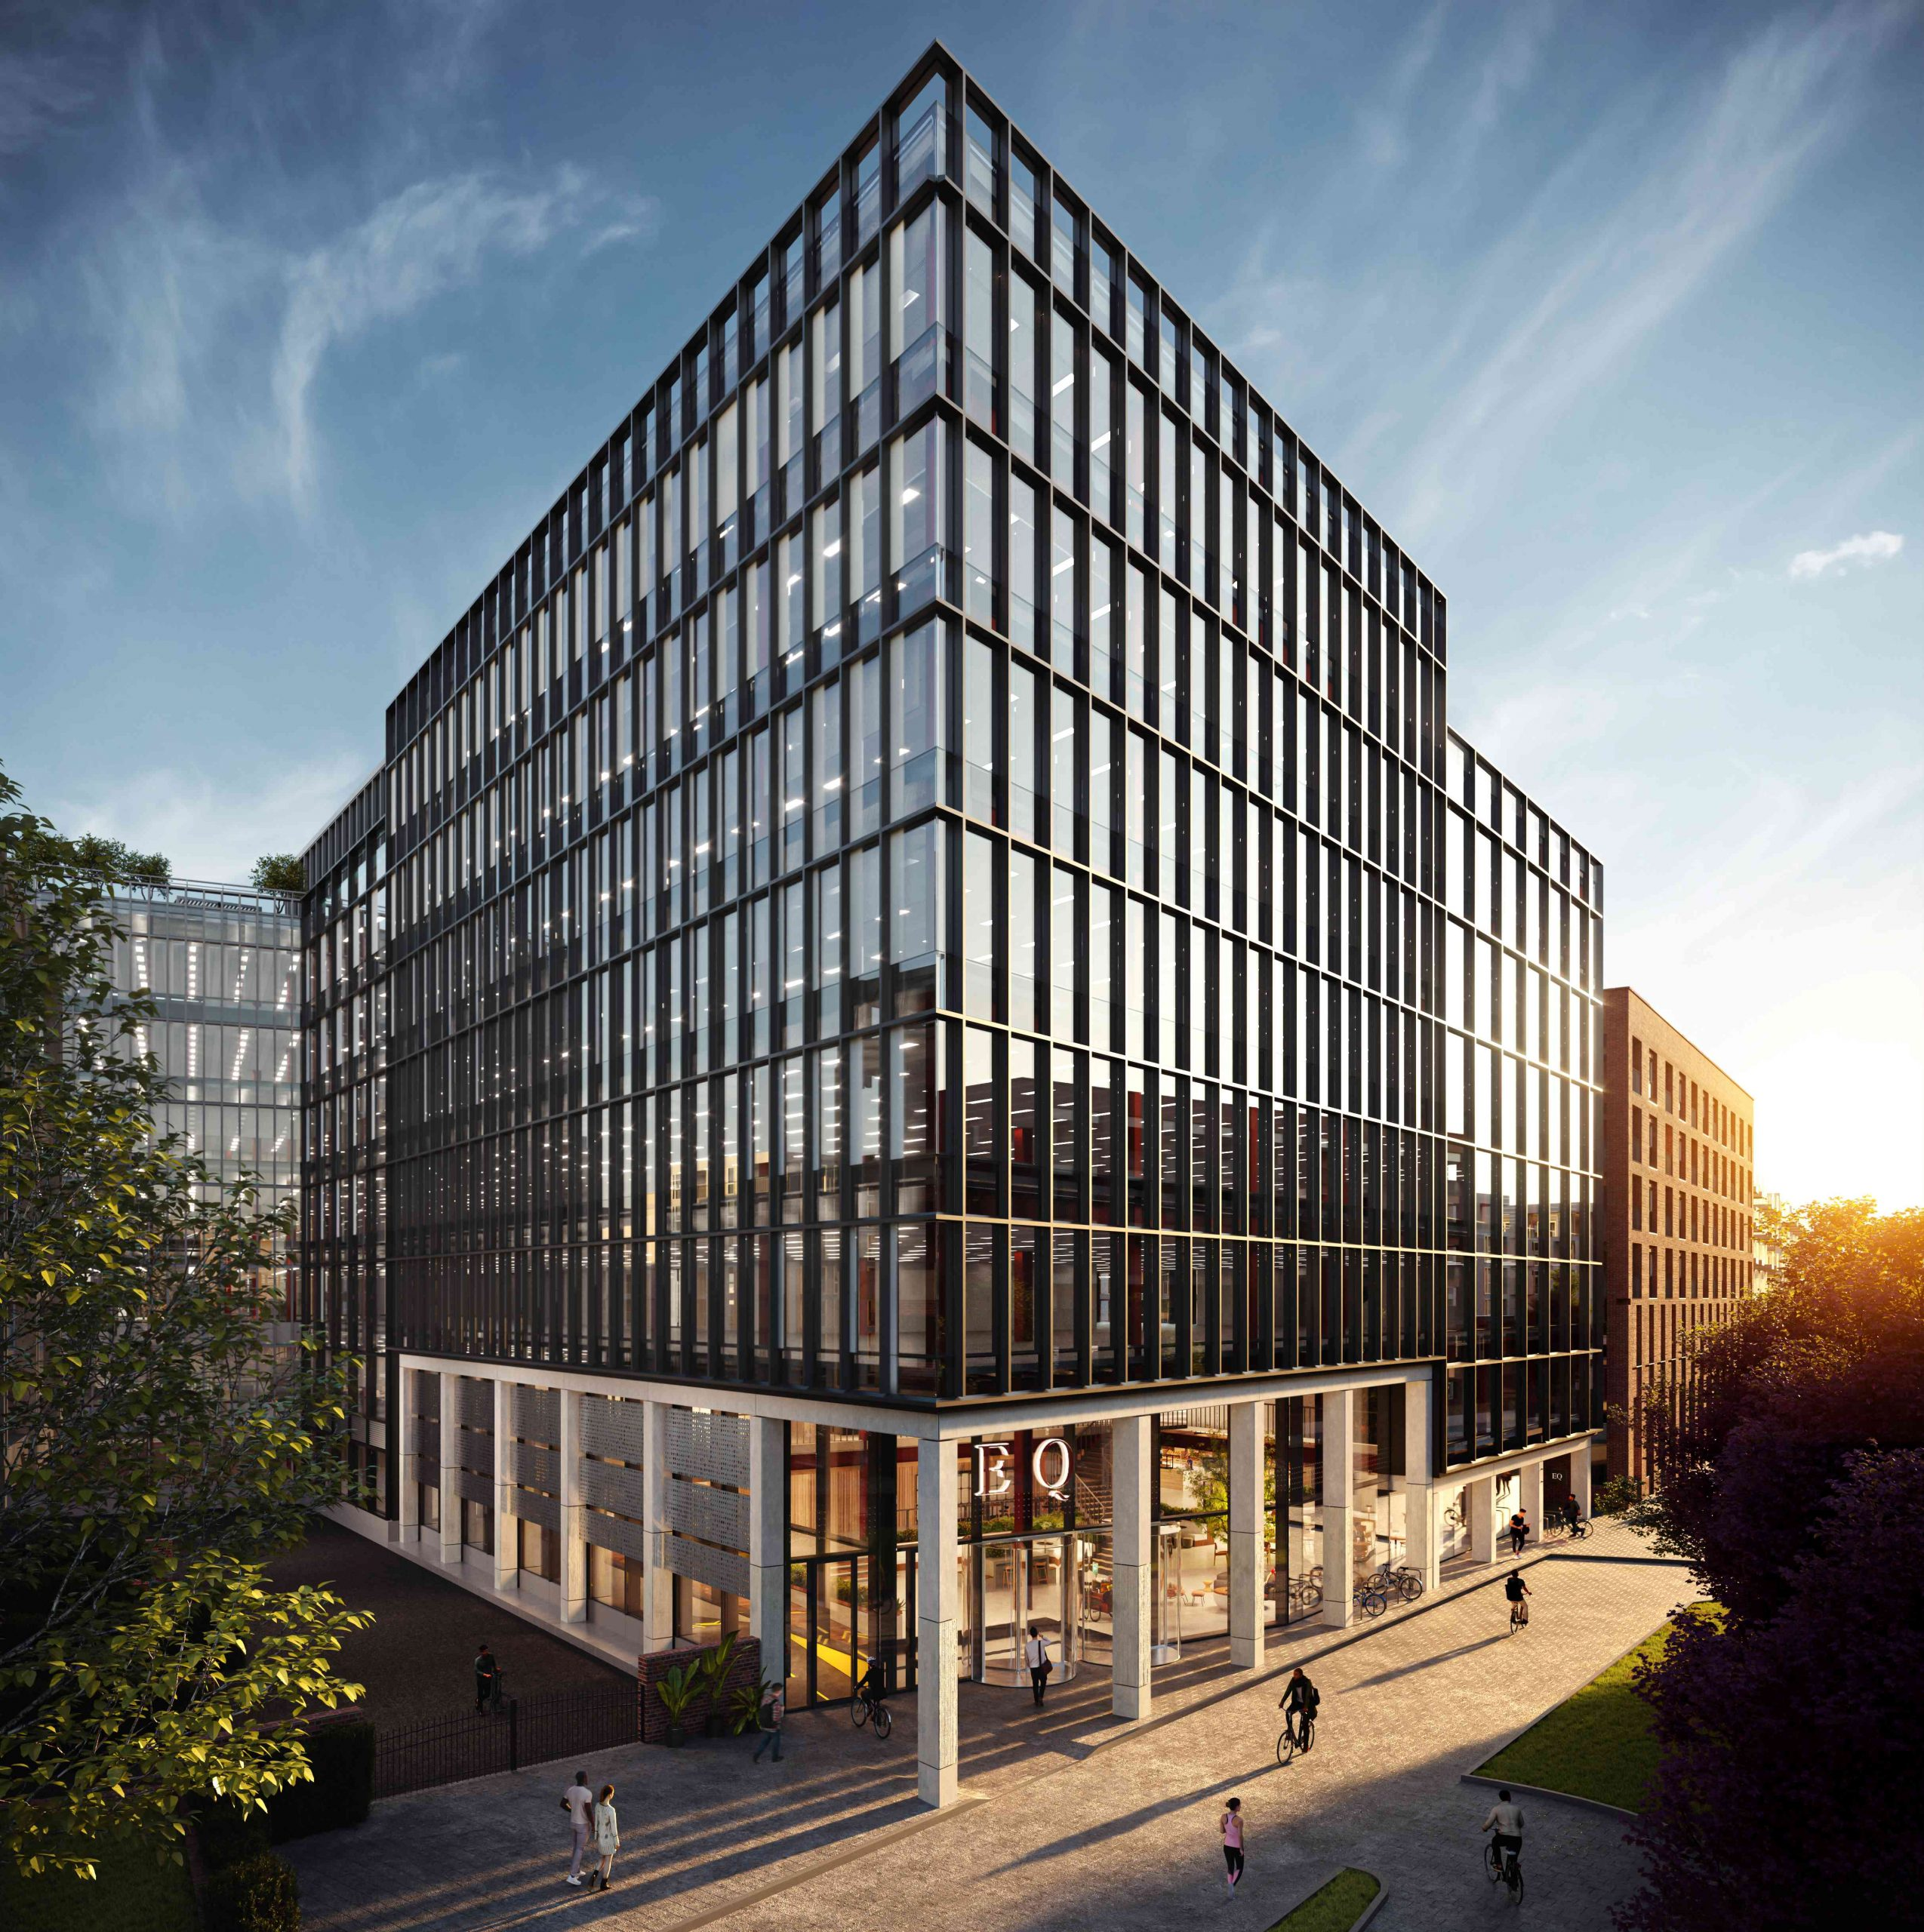 BAM STARTS WORK ON THE LARGEST SPECULATIVE OFFICE DEVELOPMENT IN SOUTHERN ENGLAND THIS YEAR